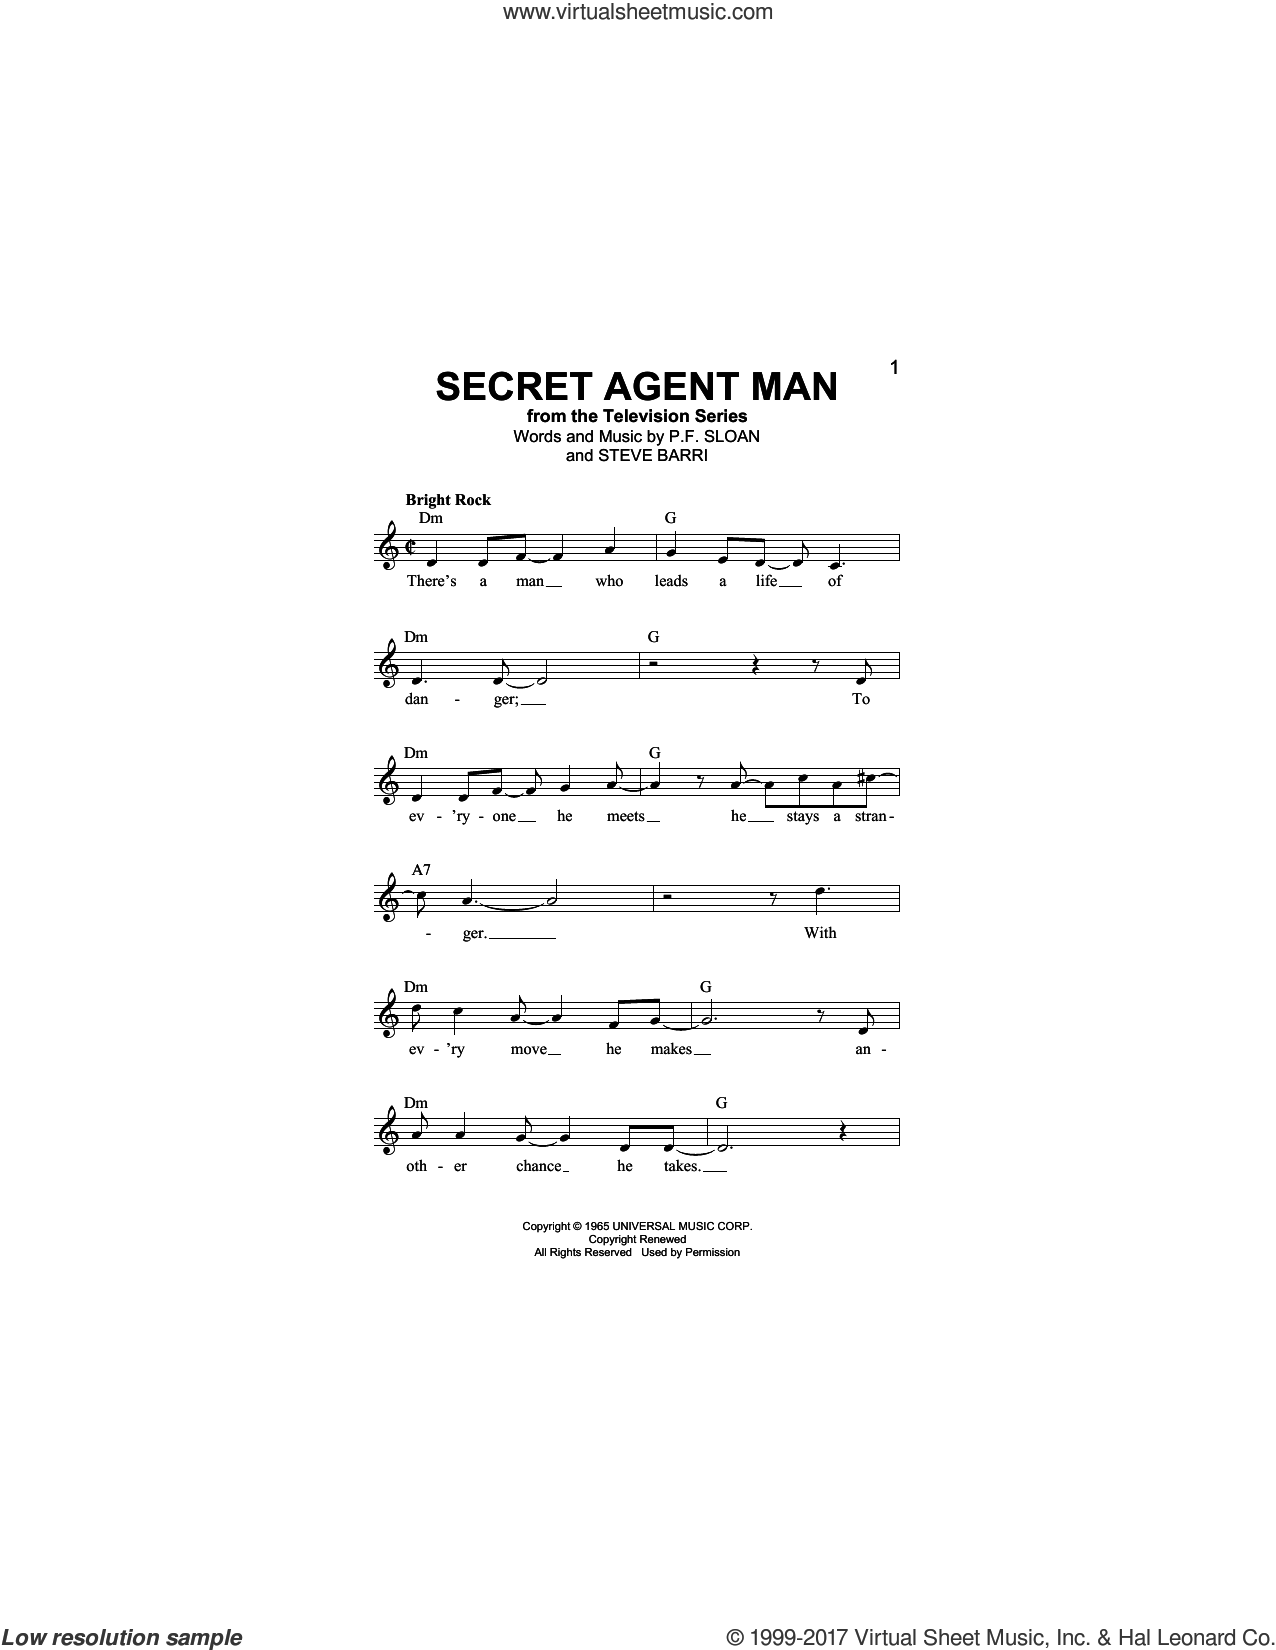 Secret Agent Man sheet music for voice and other instruments (fake book) by Johnny Rivers, P.F. Sloan and Steve Barri, intermediate skill level